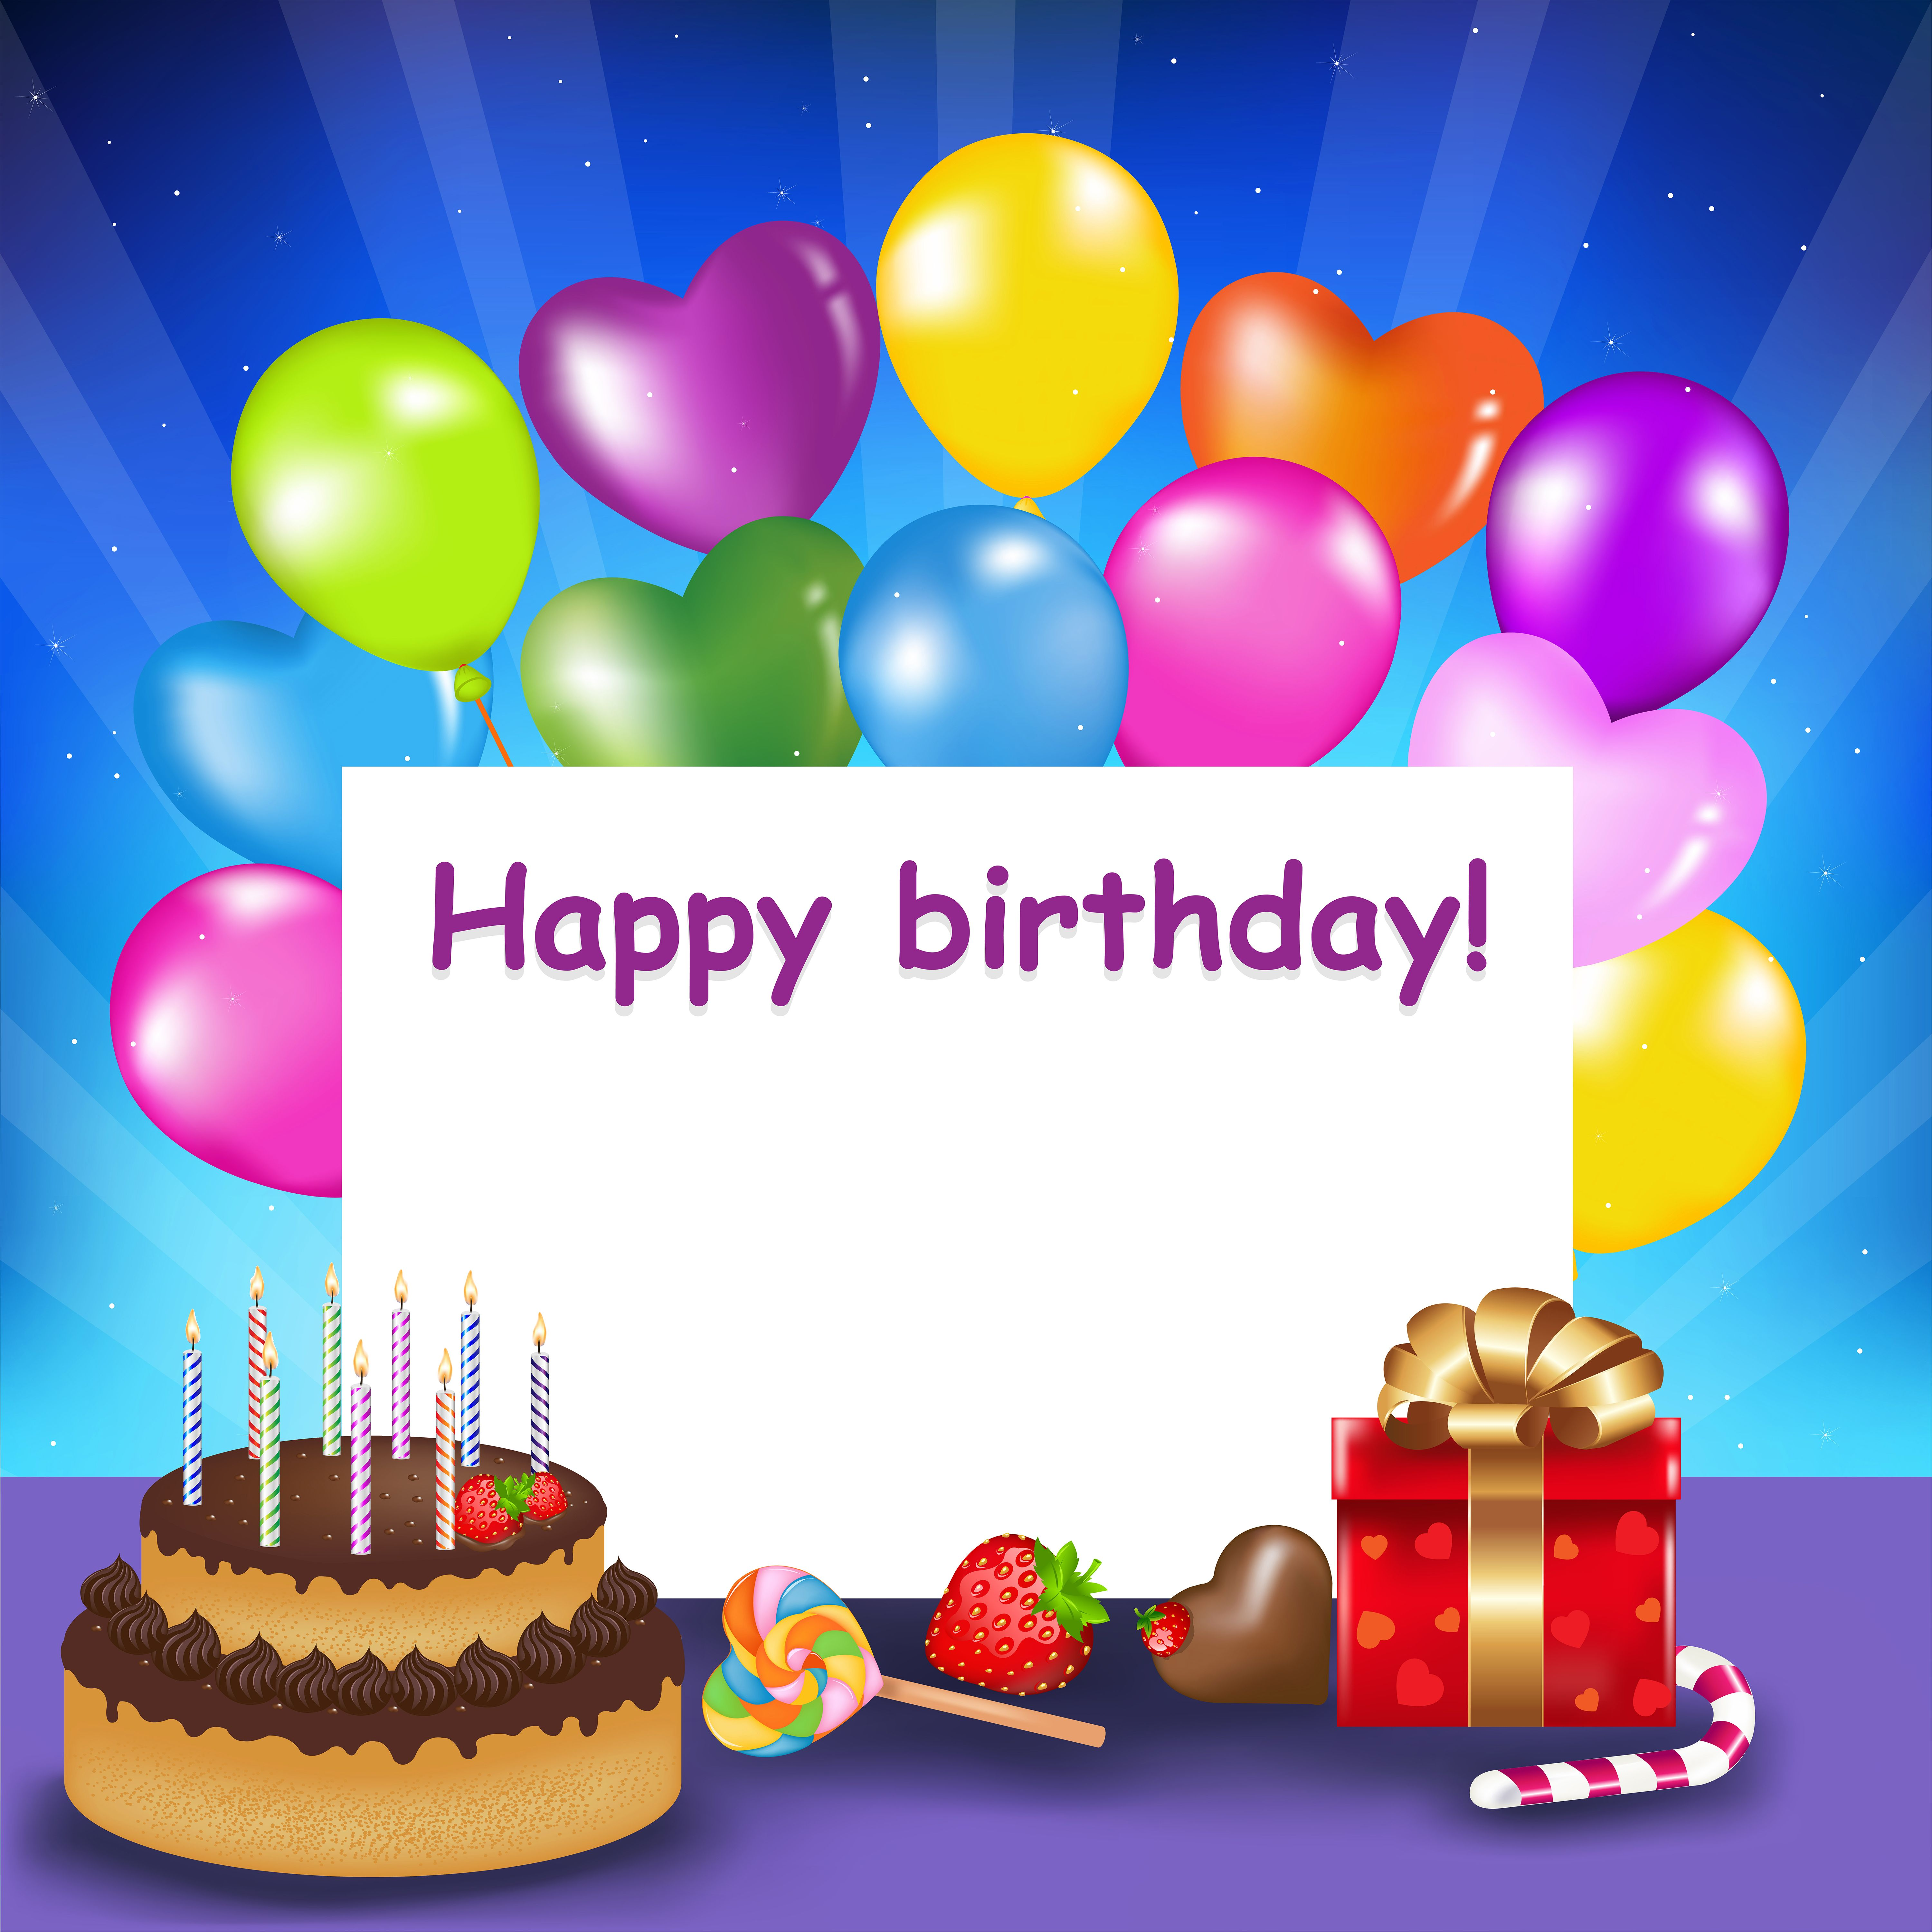 Happy Birthday Background With Cake And Balloons Birthday Background Birthday Balloons Happy Birthday Wallpaper